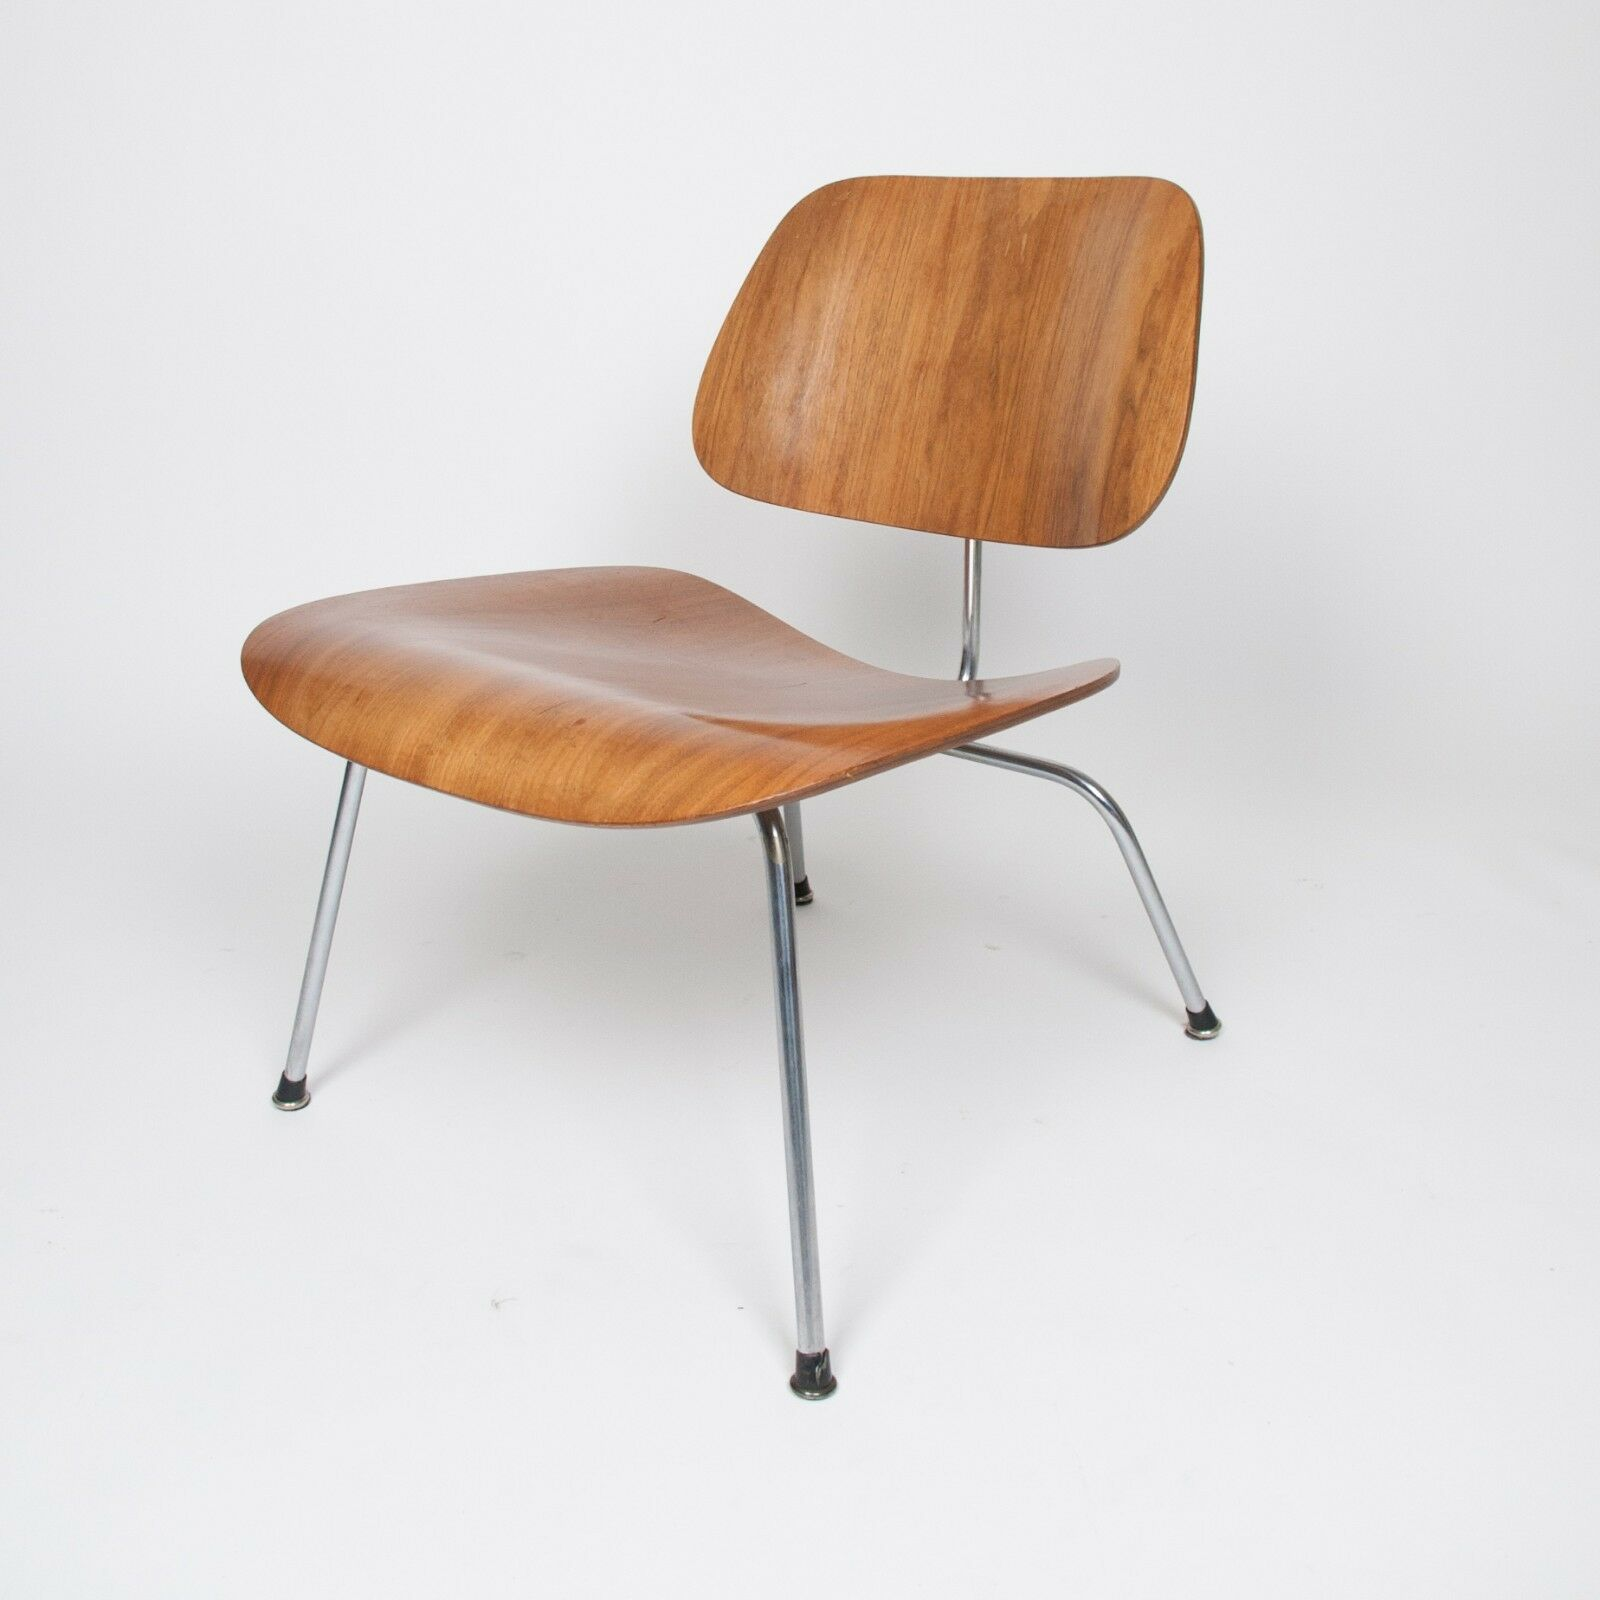 Eames Chair Herman Miller Ebay Details About Rare Eames Herman Miller Early 1950s Walnut Lcm Lounge Chair Mid Century Modern